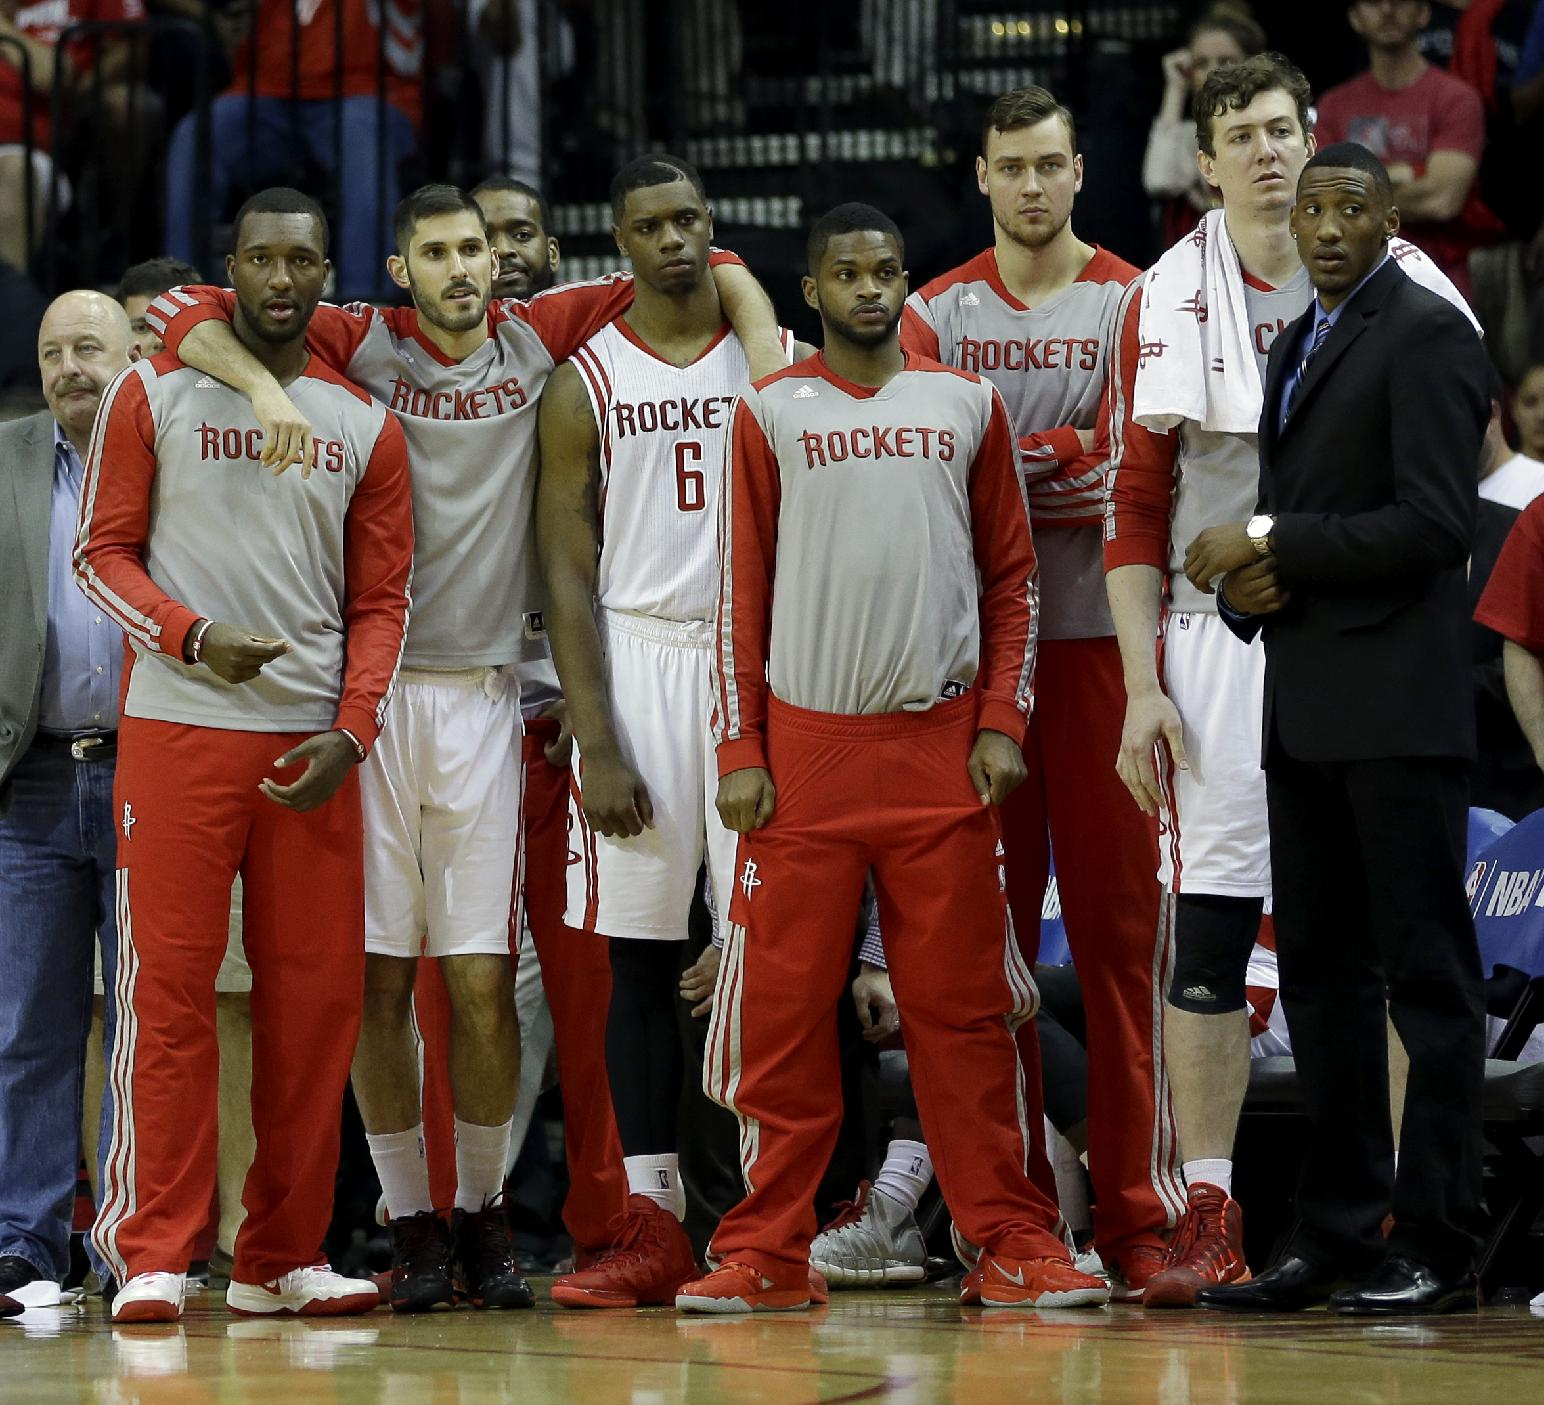 The 10-man rotation, starring the Rockets' reserves and the pot…